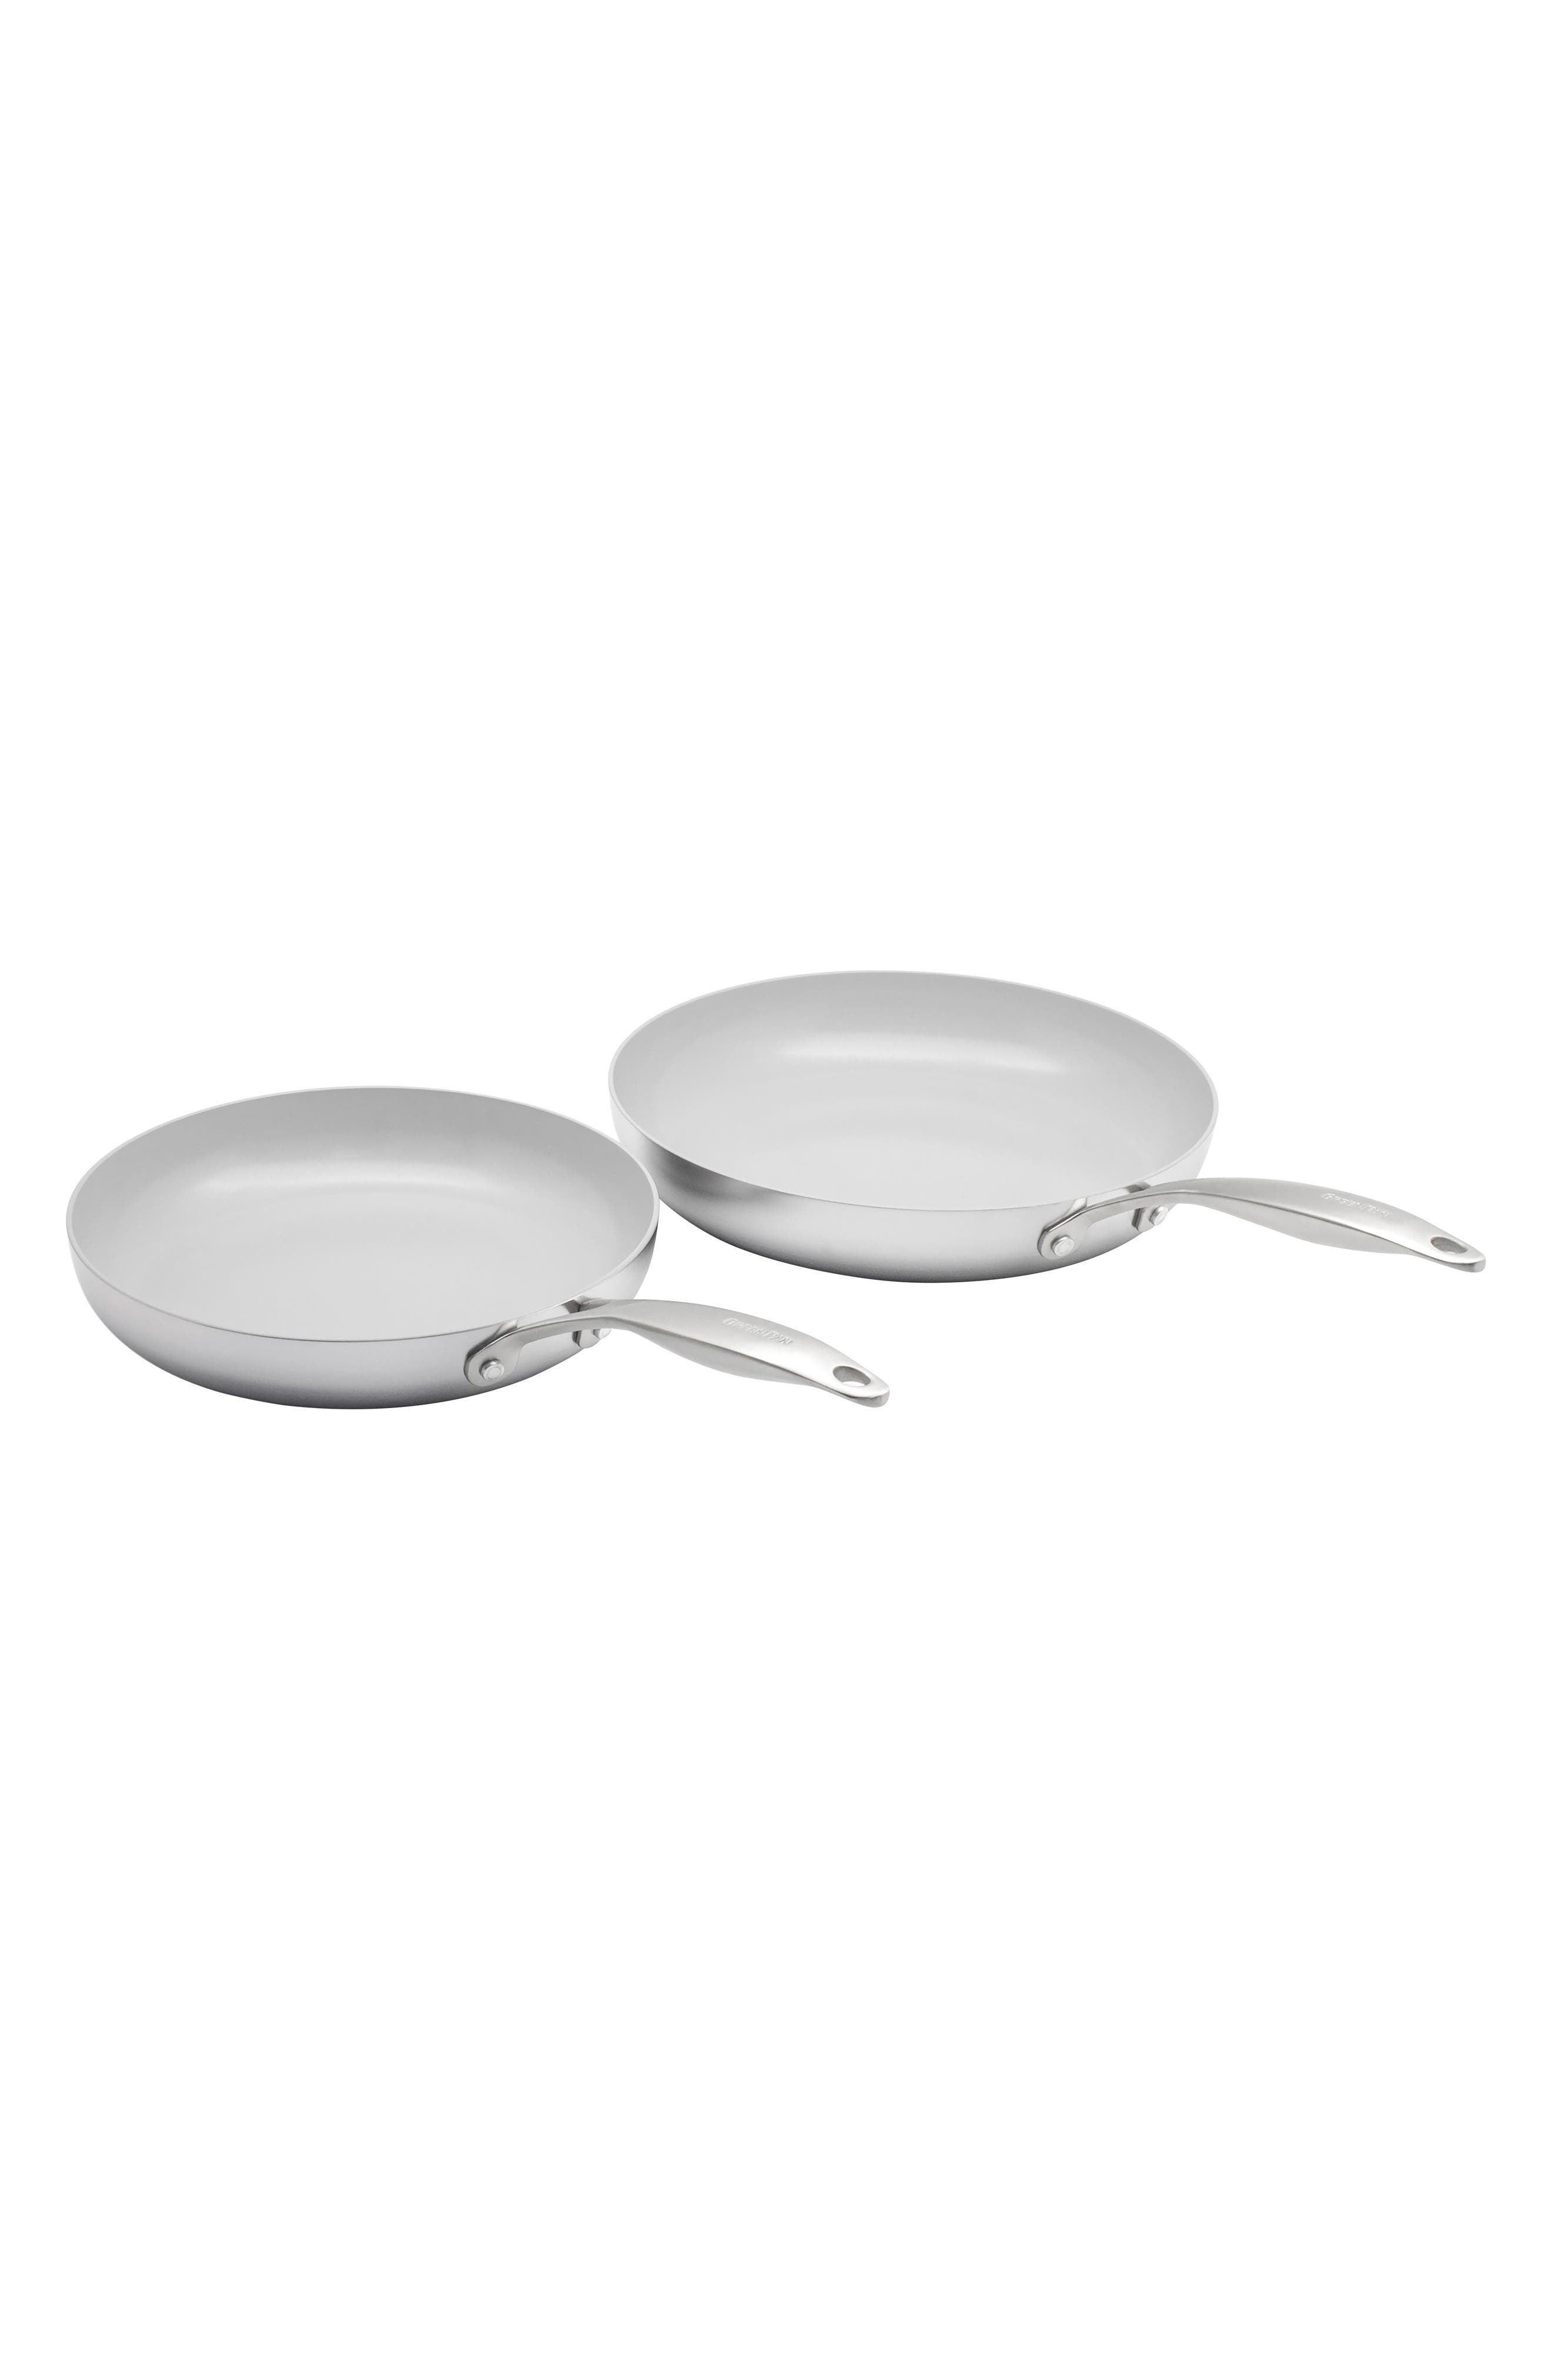 GreenPan Venice Pro 10-Inch & 12-Inch Multilayer Stainless Steel Ceramic Nonstick Frying Pan Set